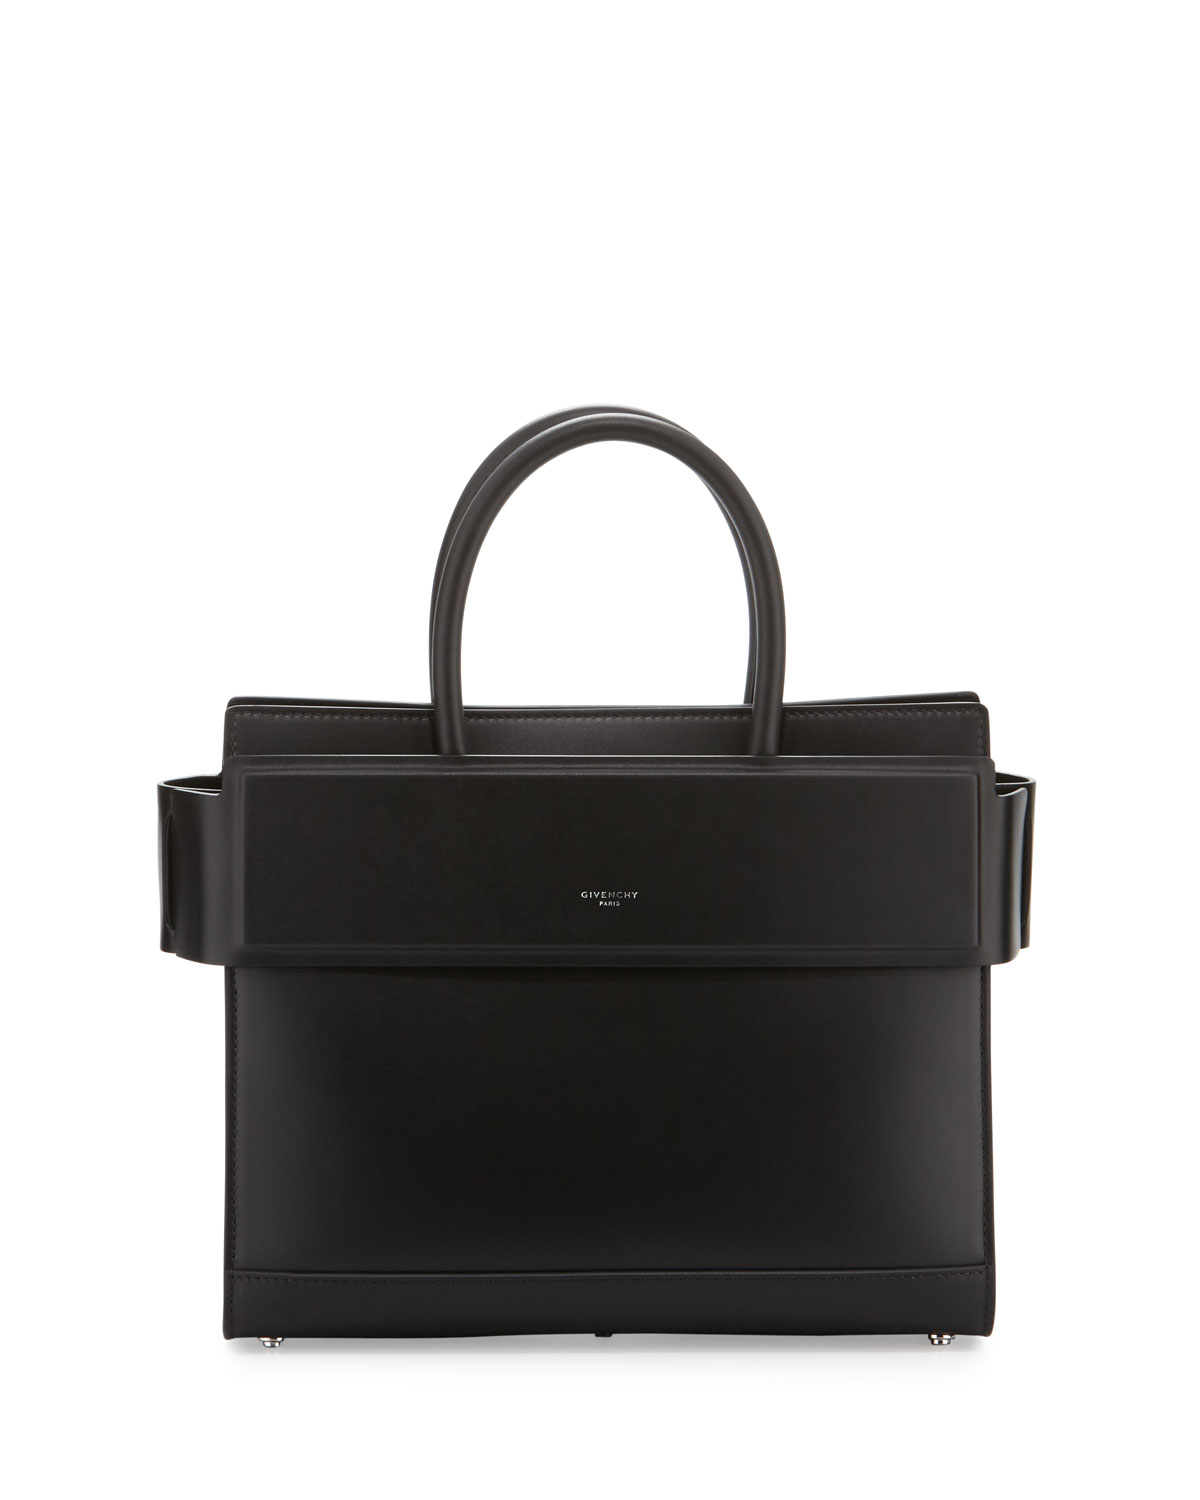 Horizon Small Leather Satchel Bag Black